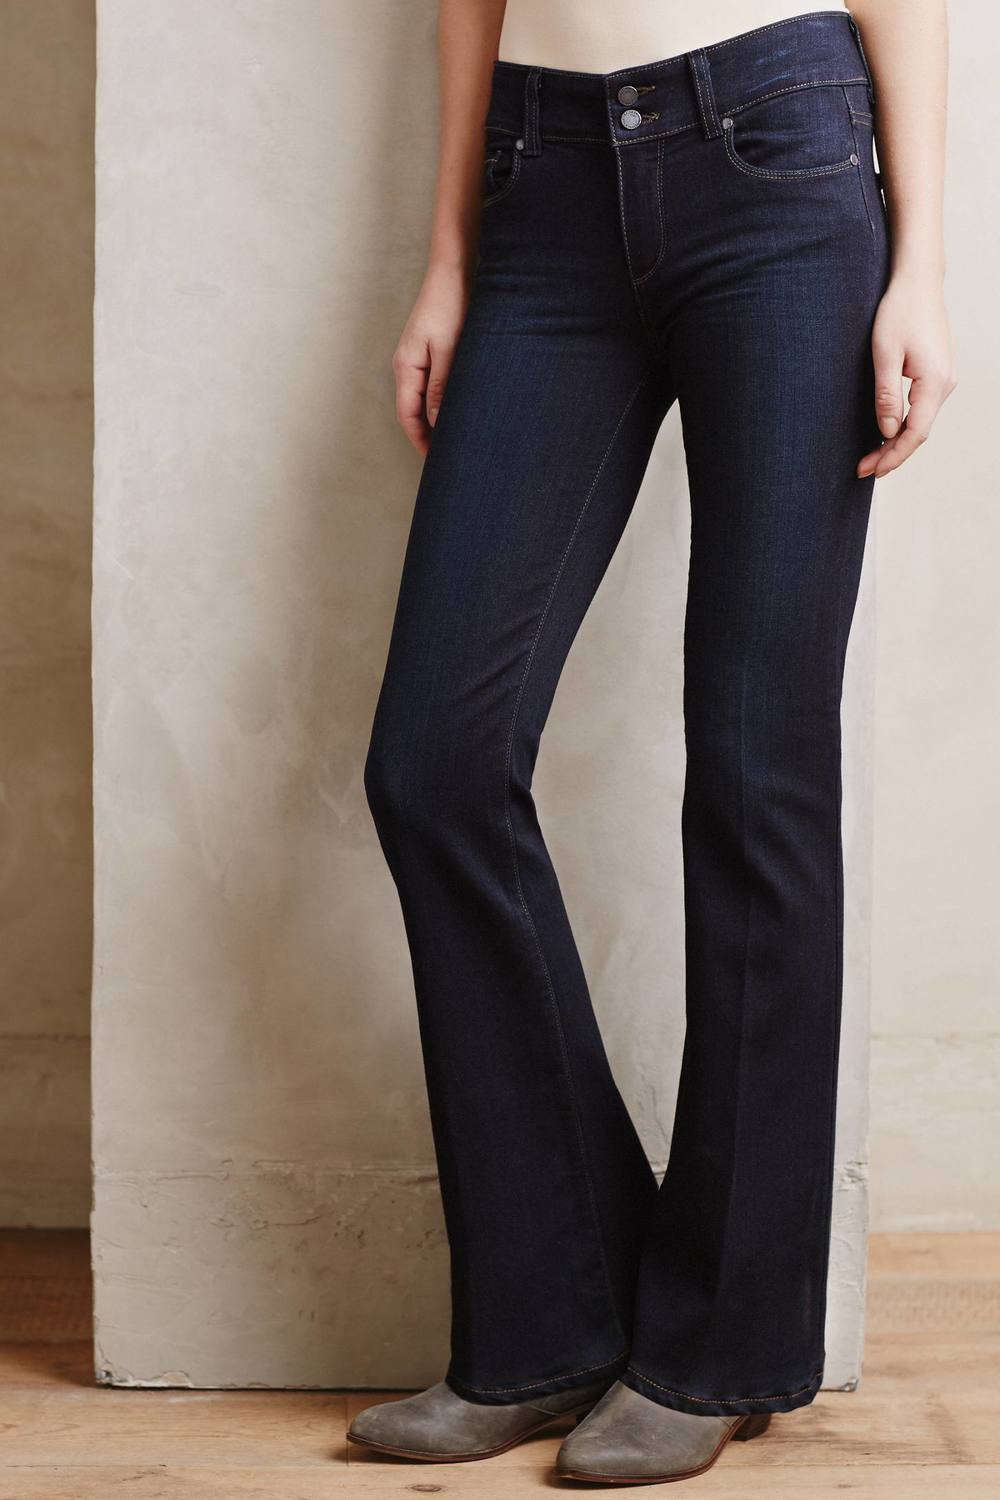 Paige Hidden Hills Petite Bootcut Jeans. Anthropology. $179.